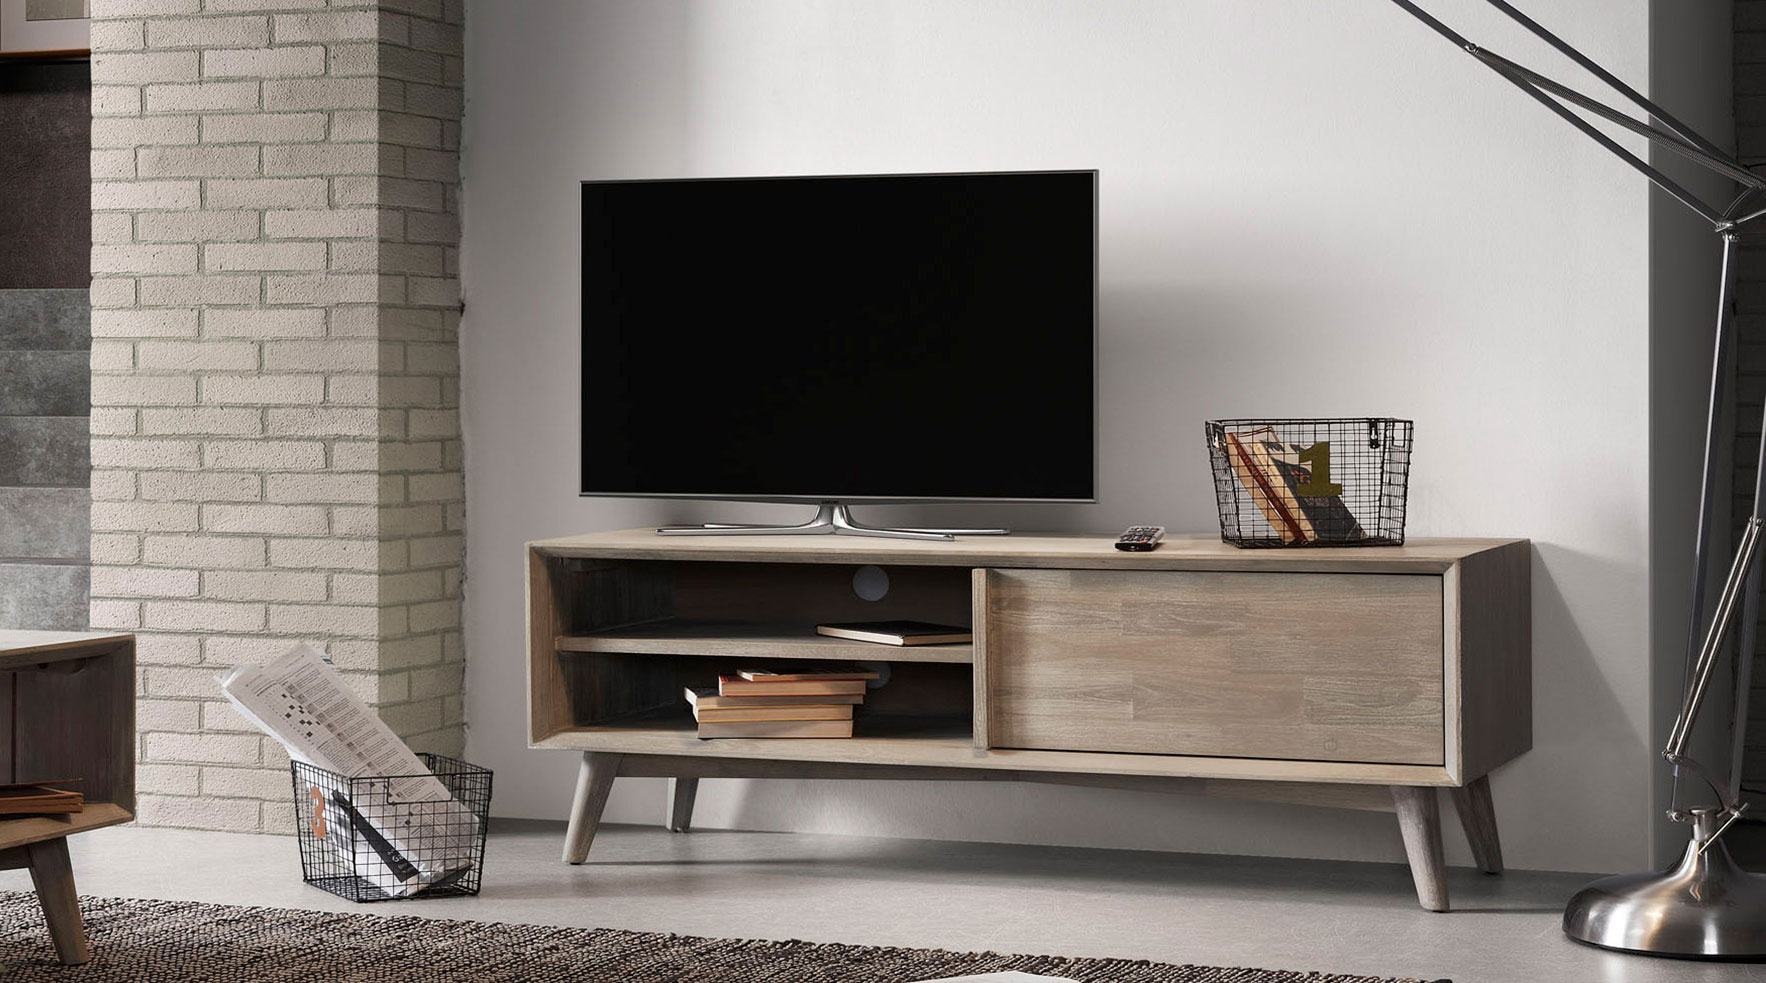 Mueble tv madera n rdica derwon 2 no disponible en for Web de muebles